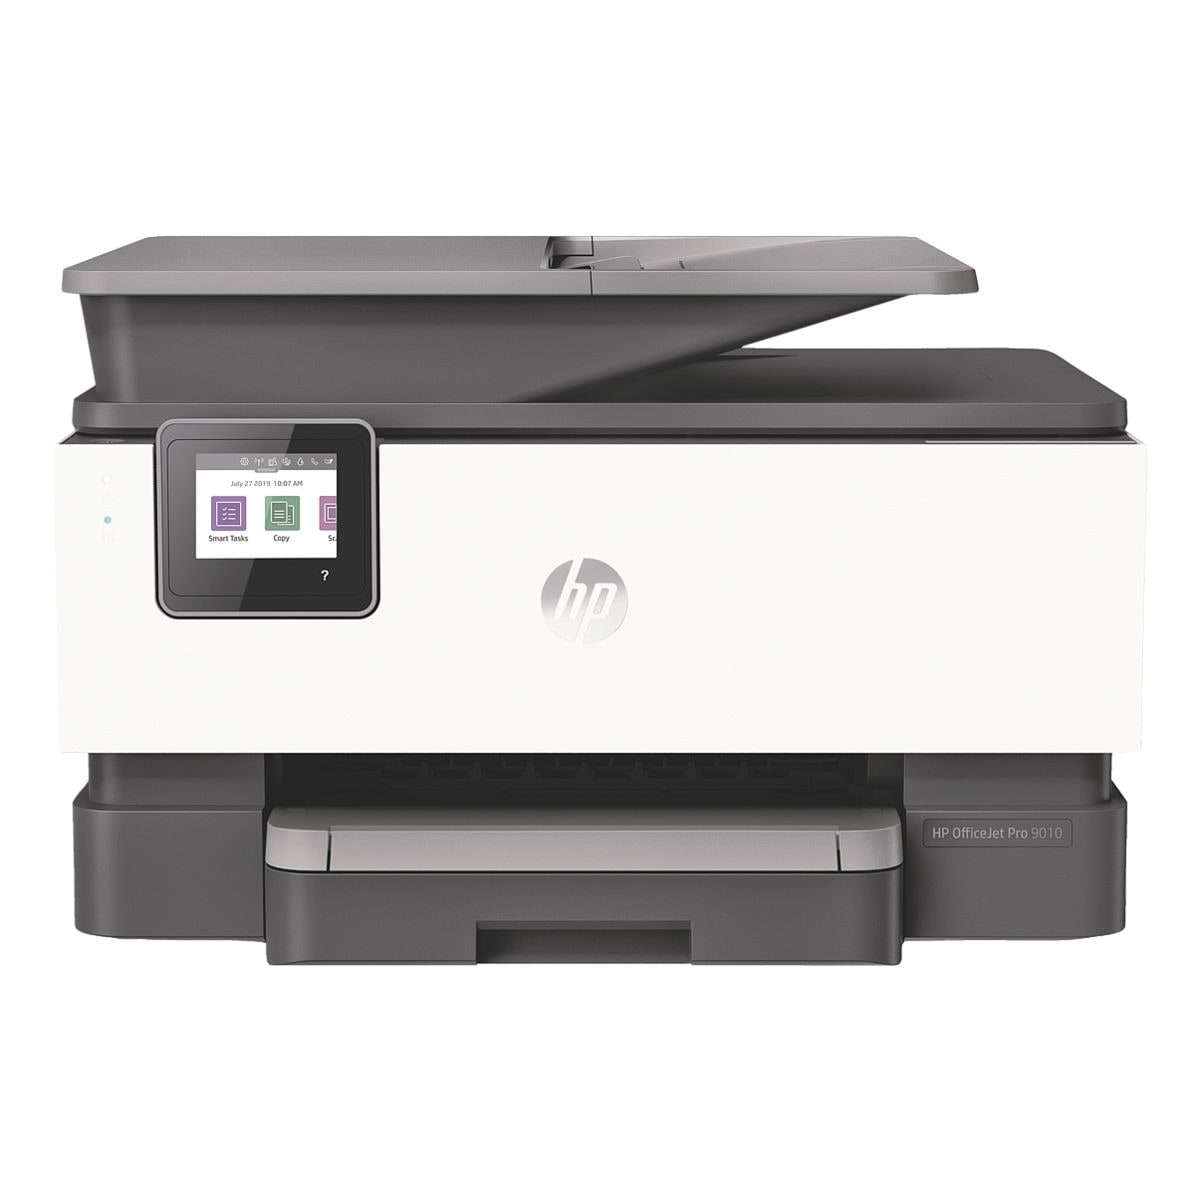 HP Multifunctionele printer »OfficeJet Pro 9010 All-in-One«